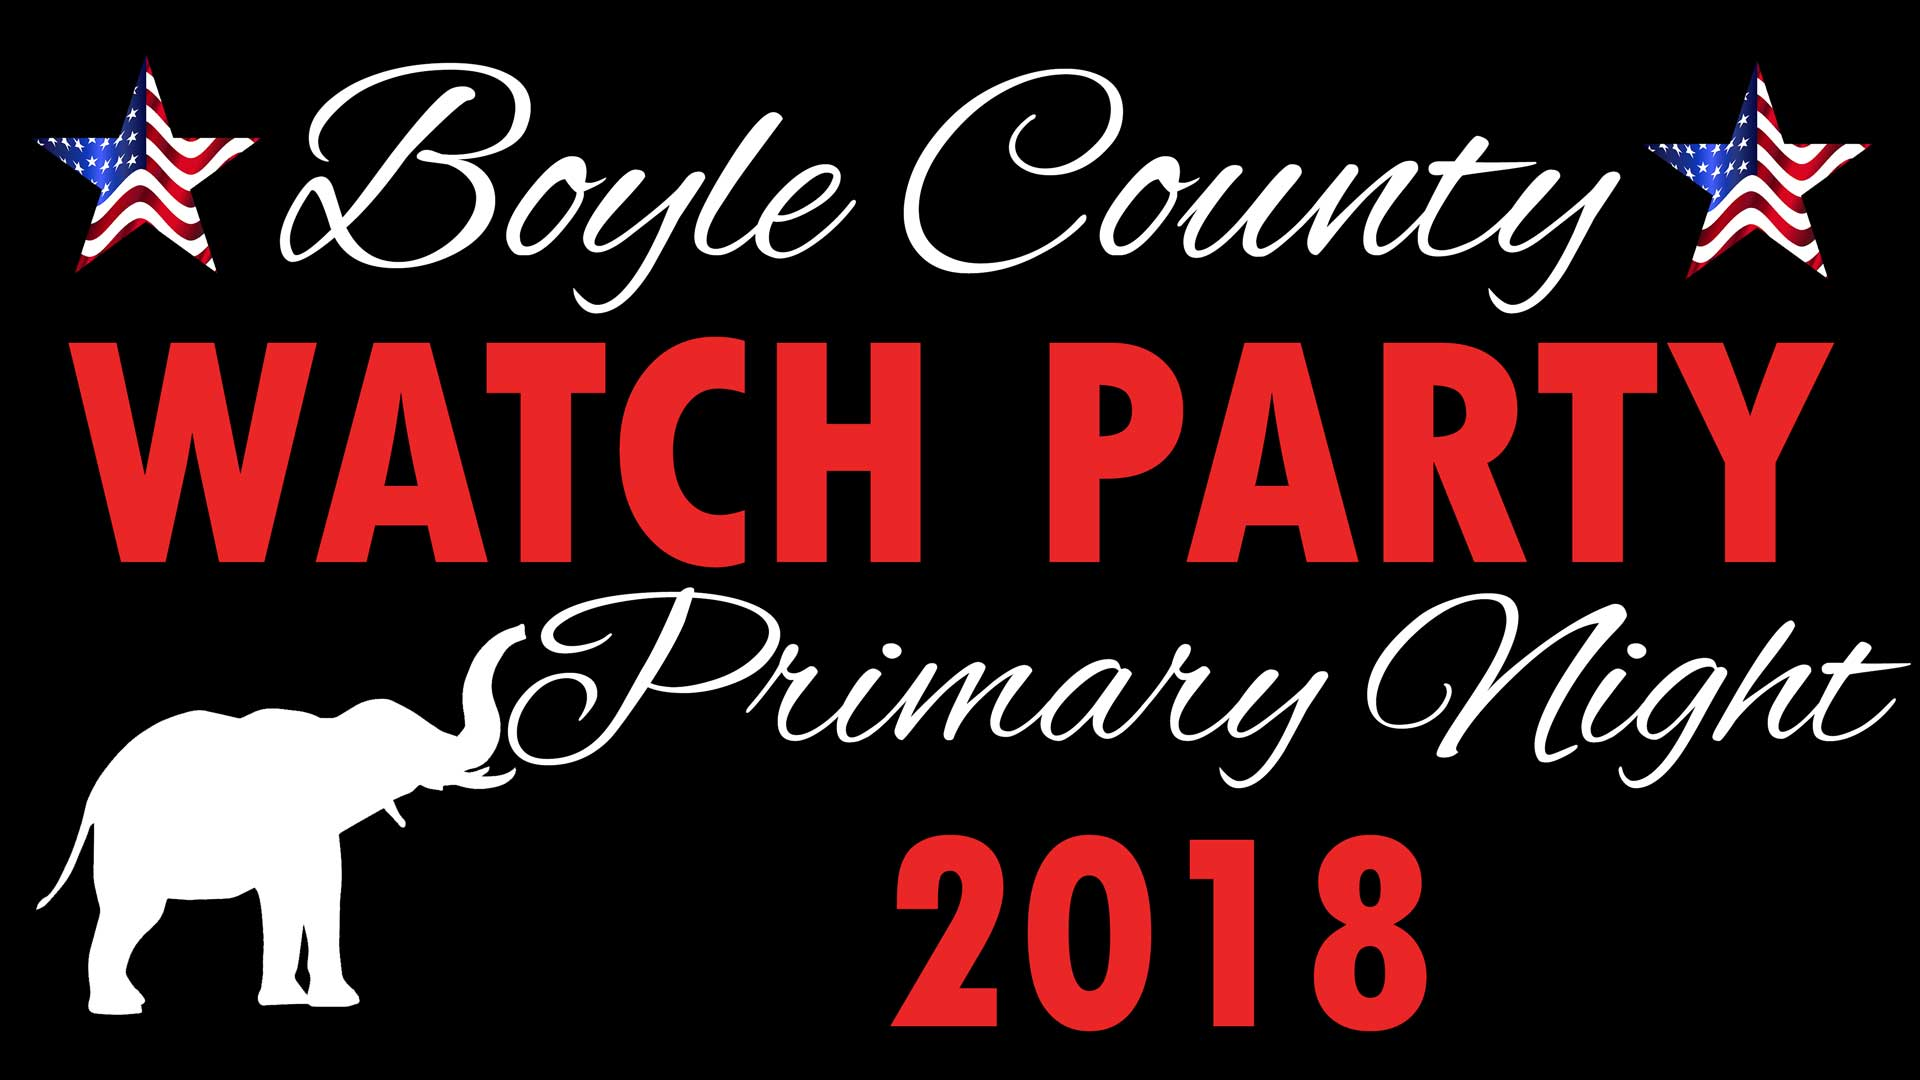 Boyle County GOP Primary Night Watch Party